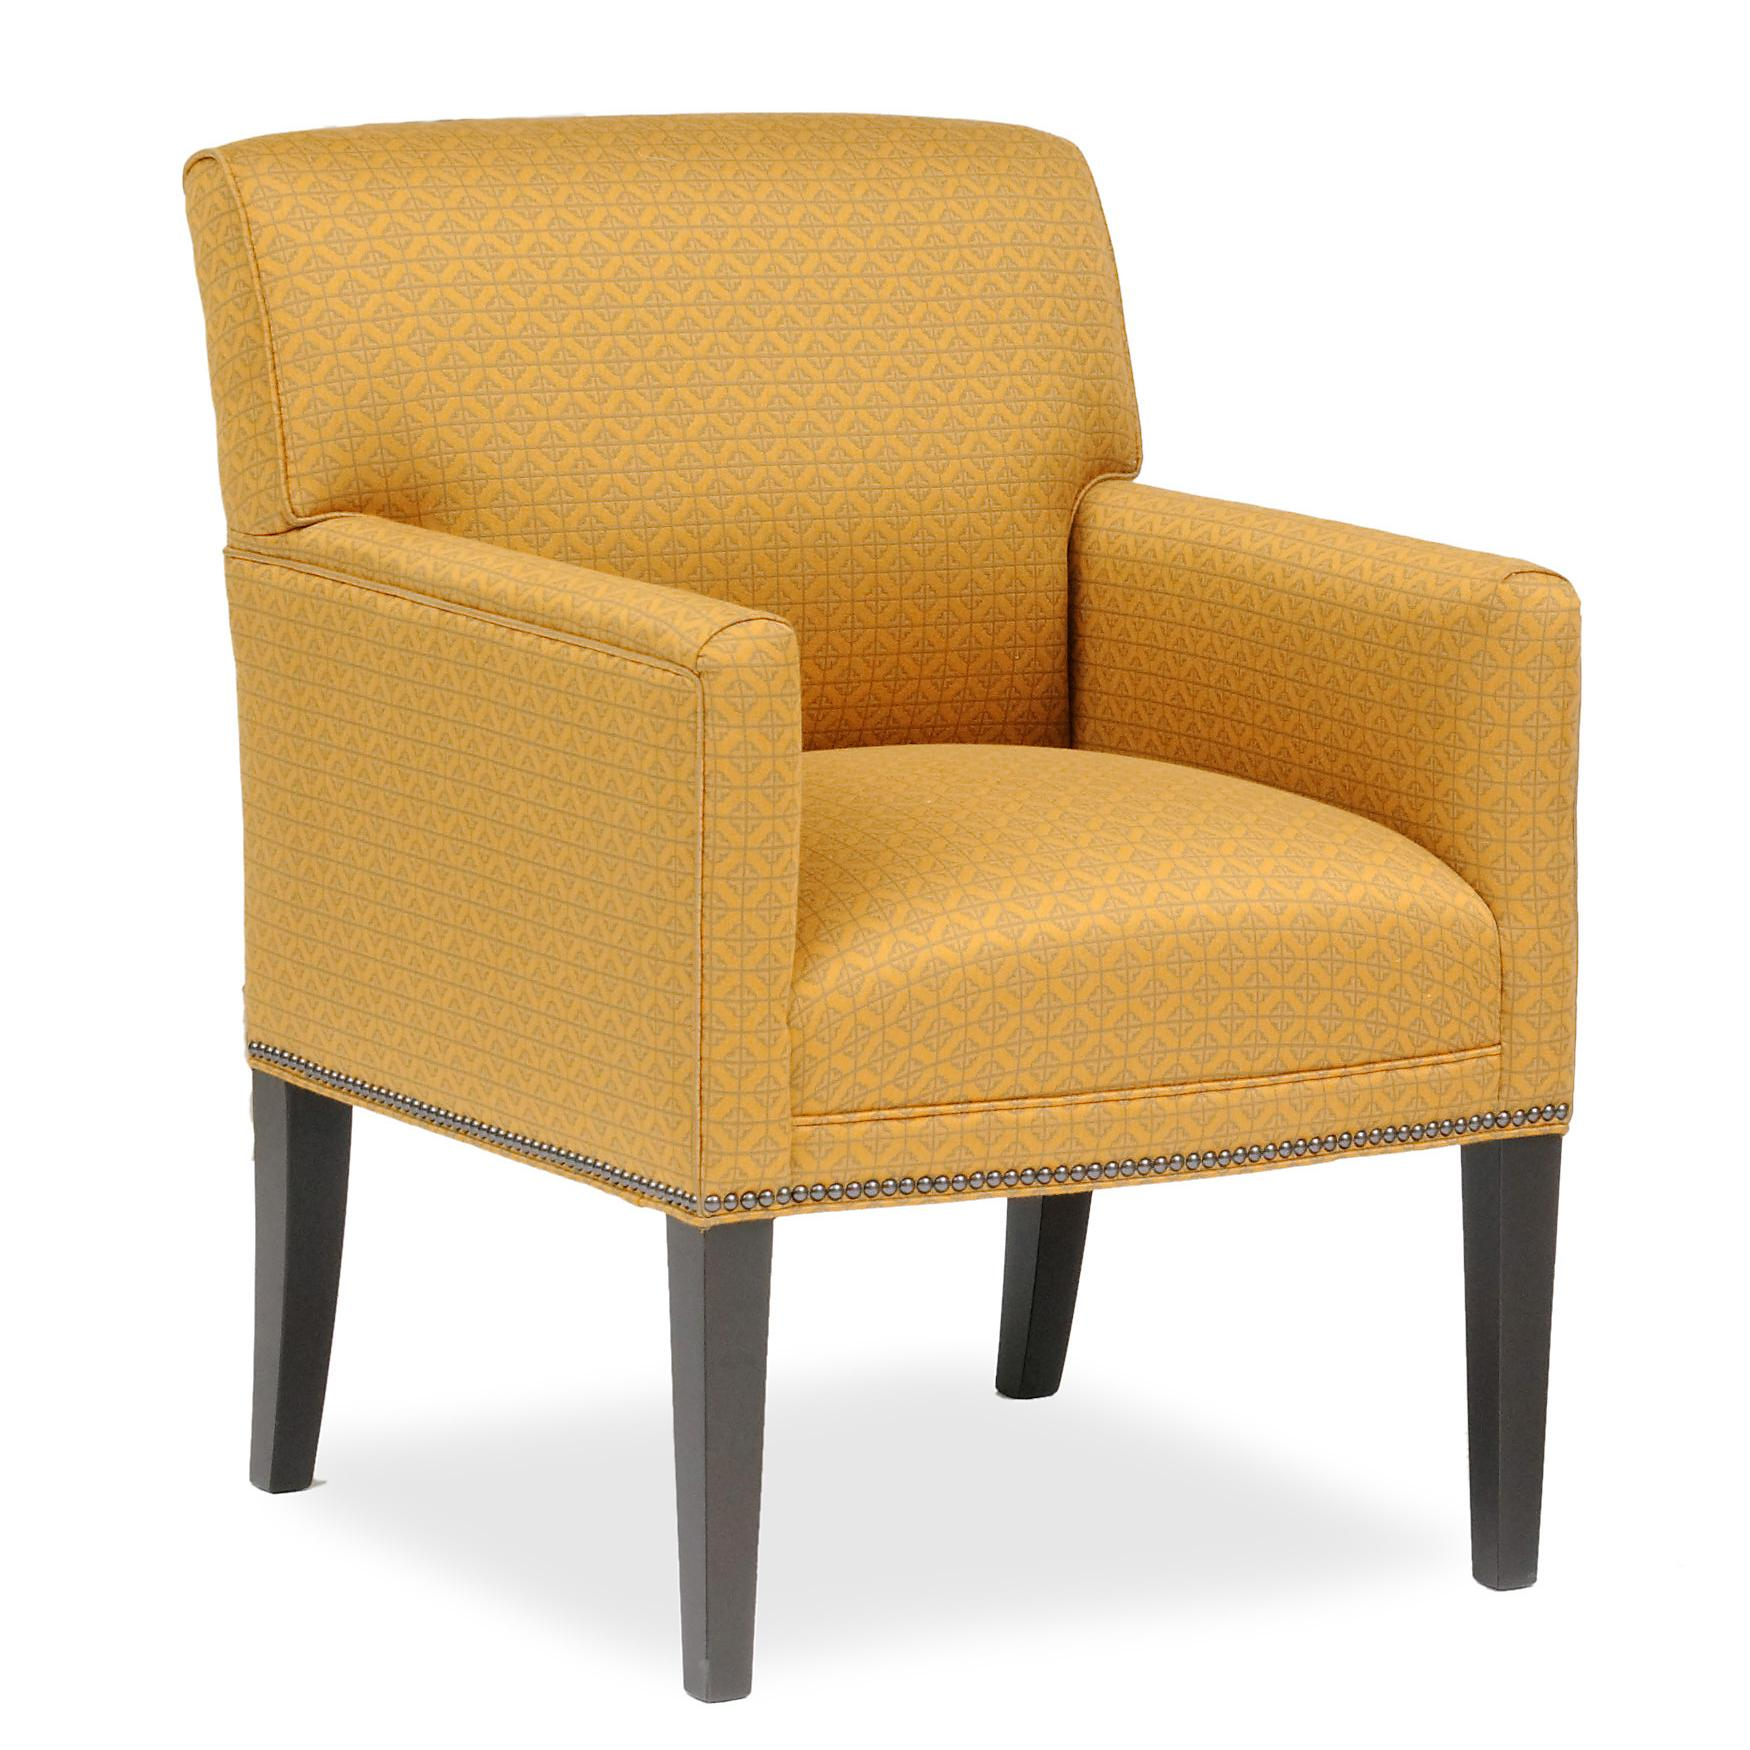 Accent Chairs and Ottomans SB Upholstered Chair by Smith Brothers at Pilgrim Furniture City